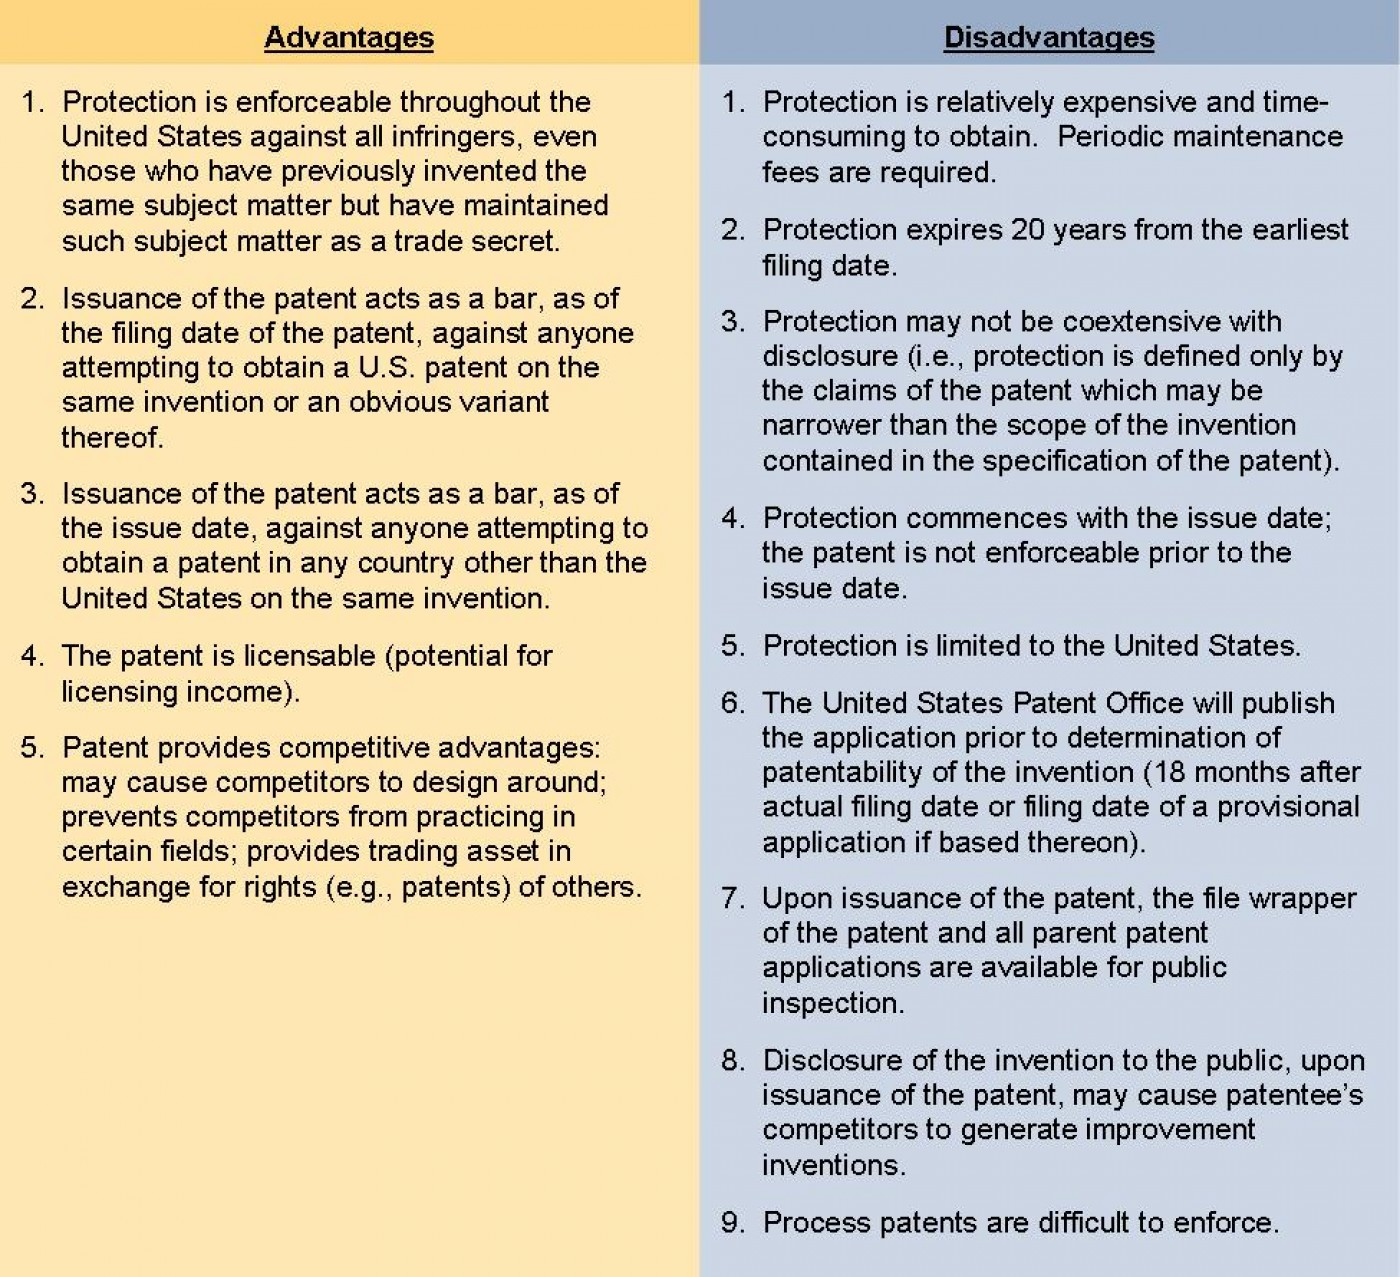 027 News87pic2 Advantage And Disadvantage Of Science Essay Shocking Advantages Disadvantages In Tamil Pdf 1400